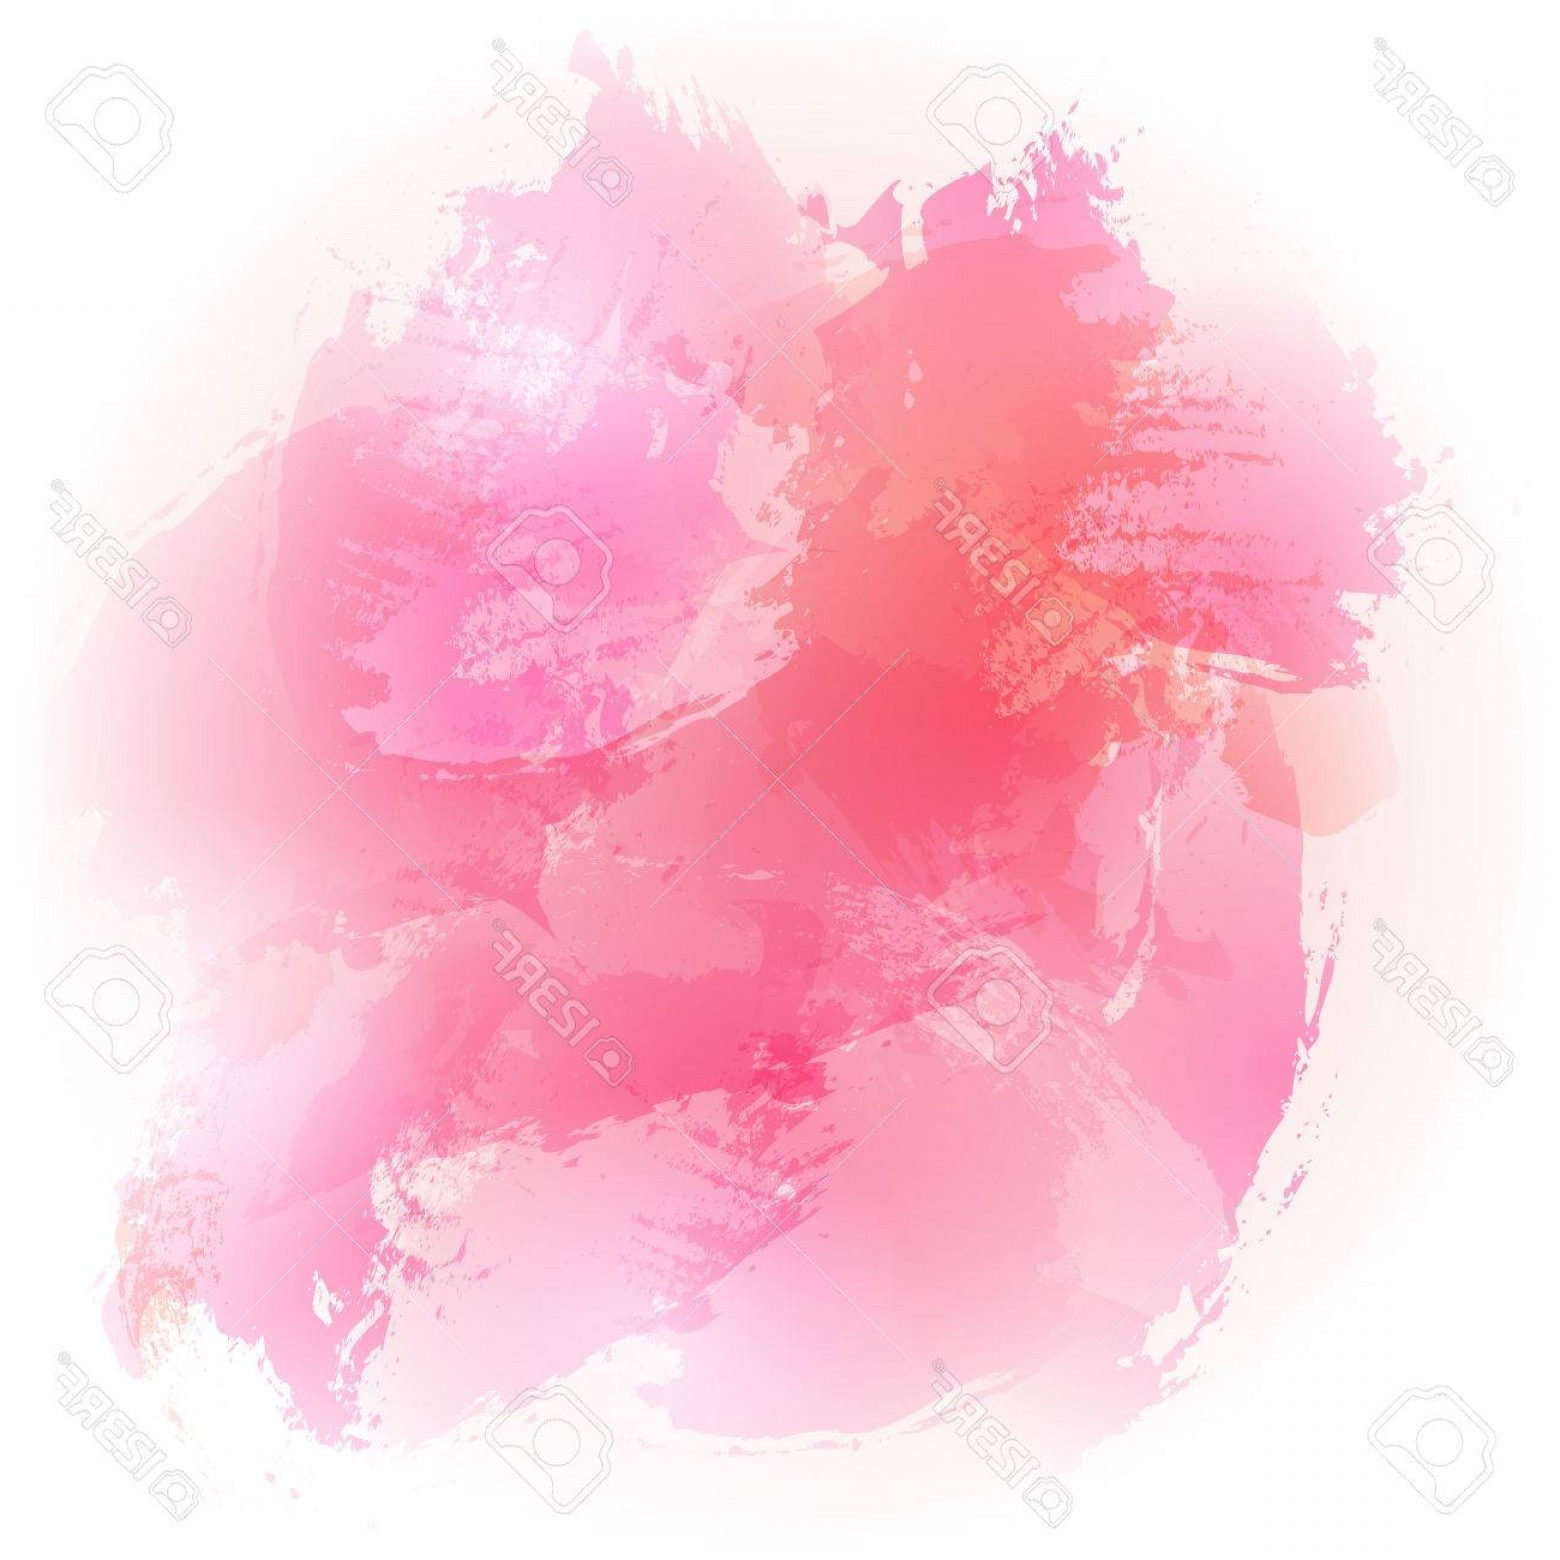 Watercolor Vector Background Free: Photostock Vector Abstract Watercolor Pink Brushed Vector Background Design